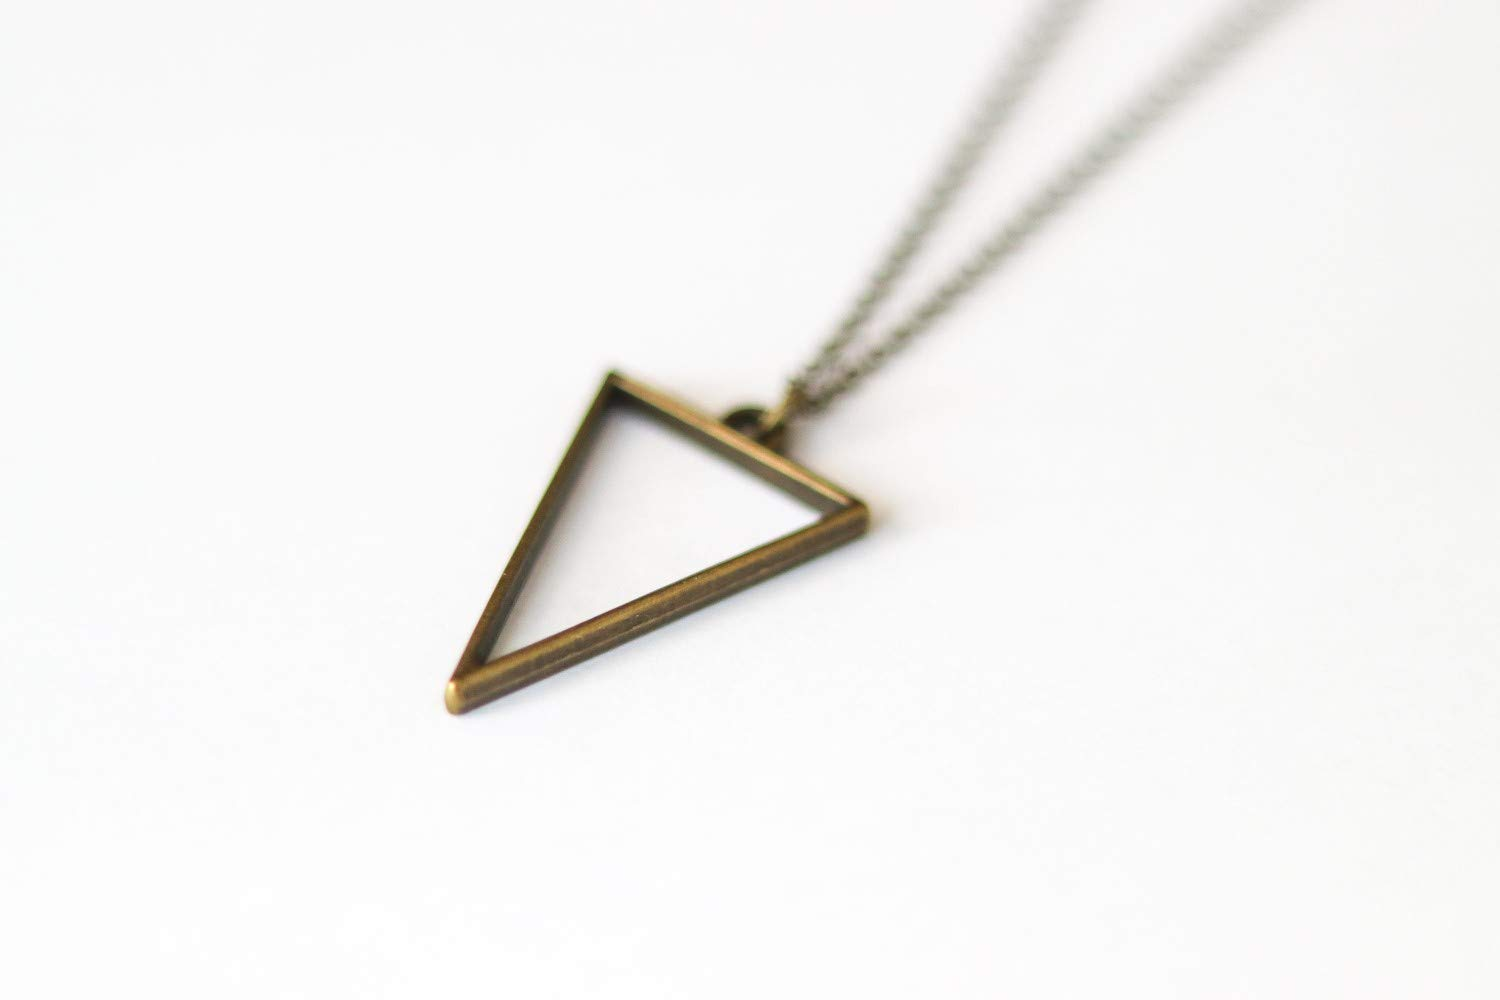 geometric necklace mens necklace with a bronze triangle pendant bronze chain Triangle necklace for men groomsmen gift gift for him